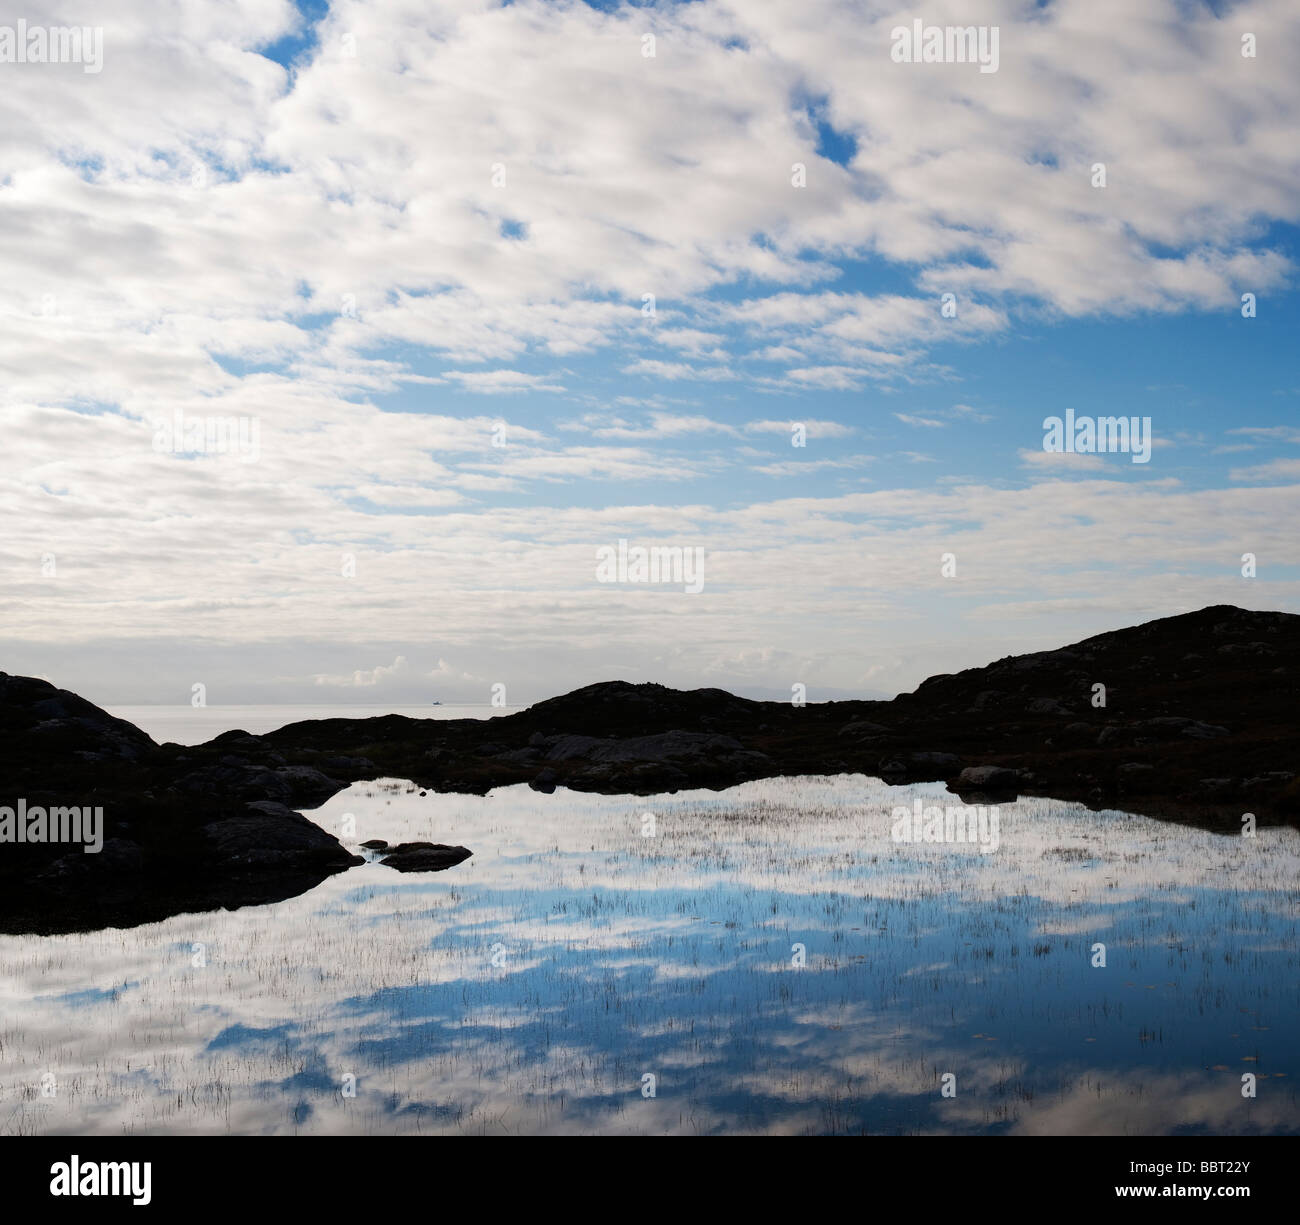 Isle of Harris still loch reflections, Outer Hebrides, Scotland - Stock Image